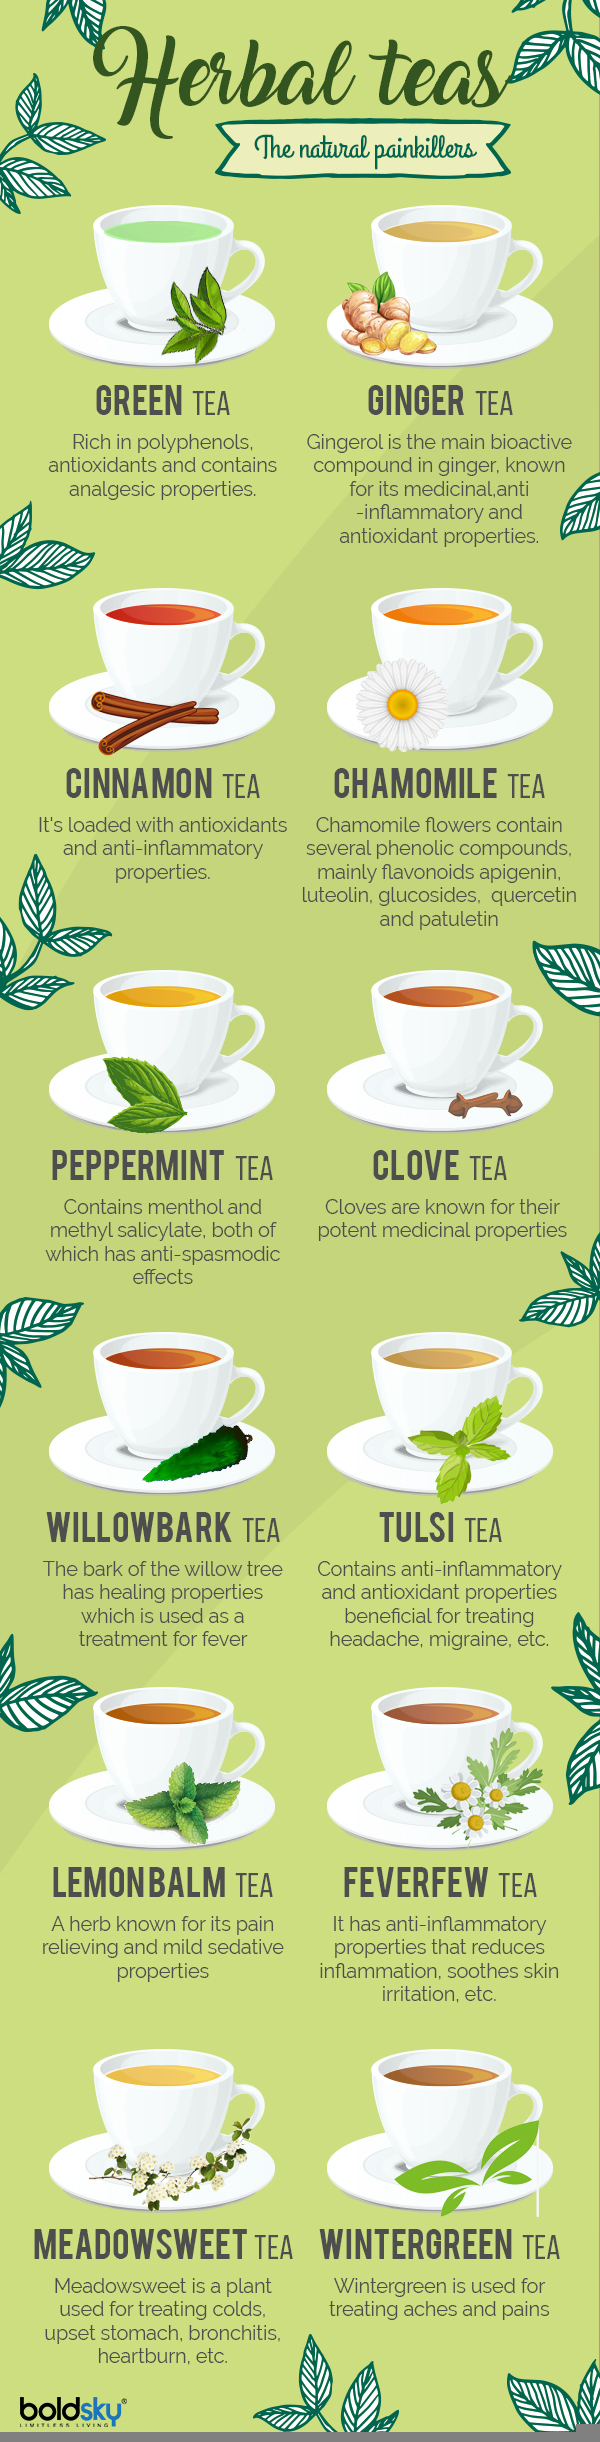 tea for headaches infographic